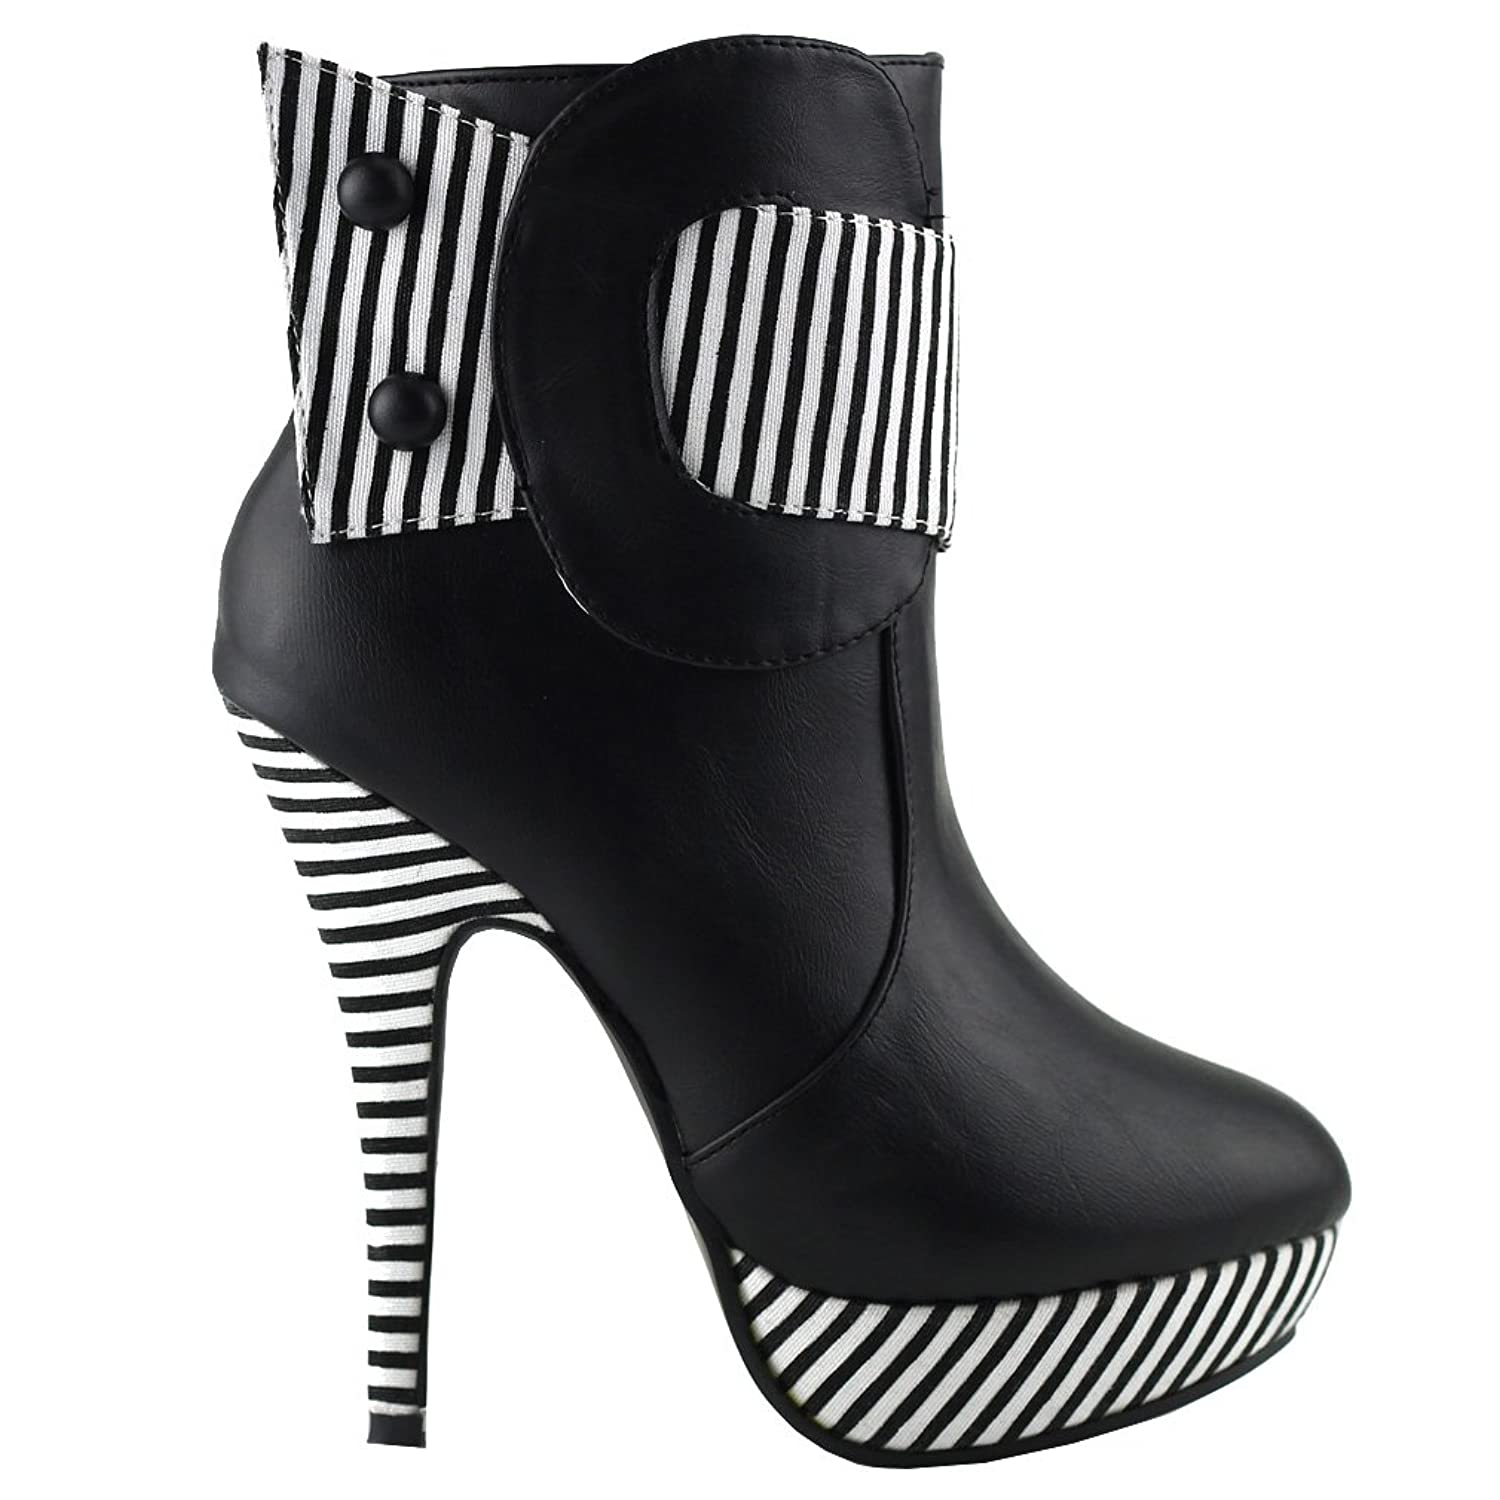 24c94cbbd135 Show story striped button zipper high heel stiletto platform ankle boots  ankle bootie jpg 1500x1500 Heels